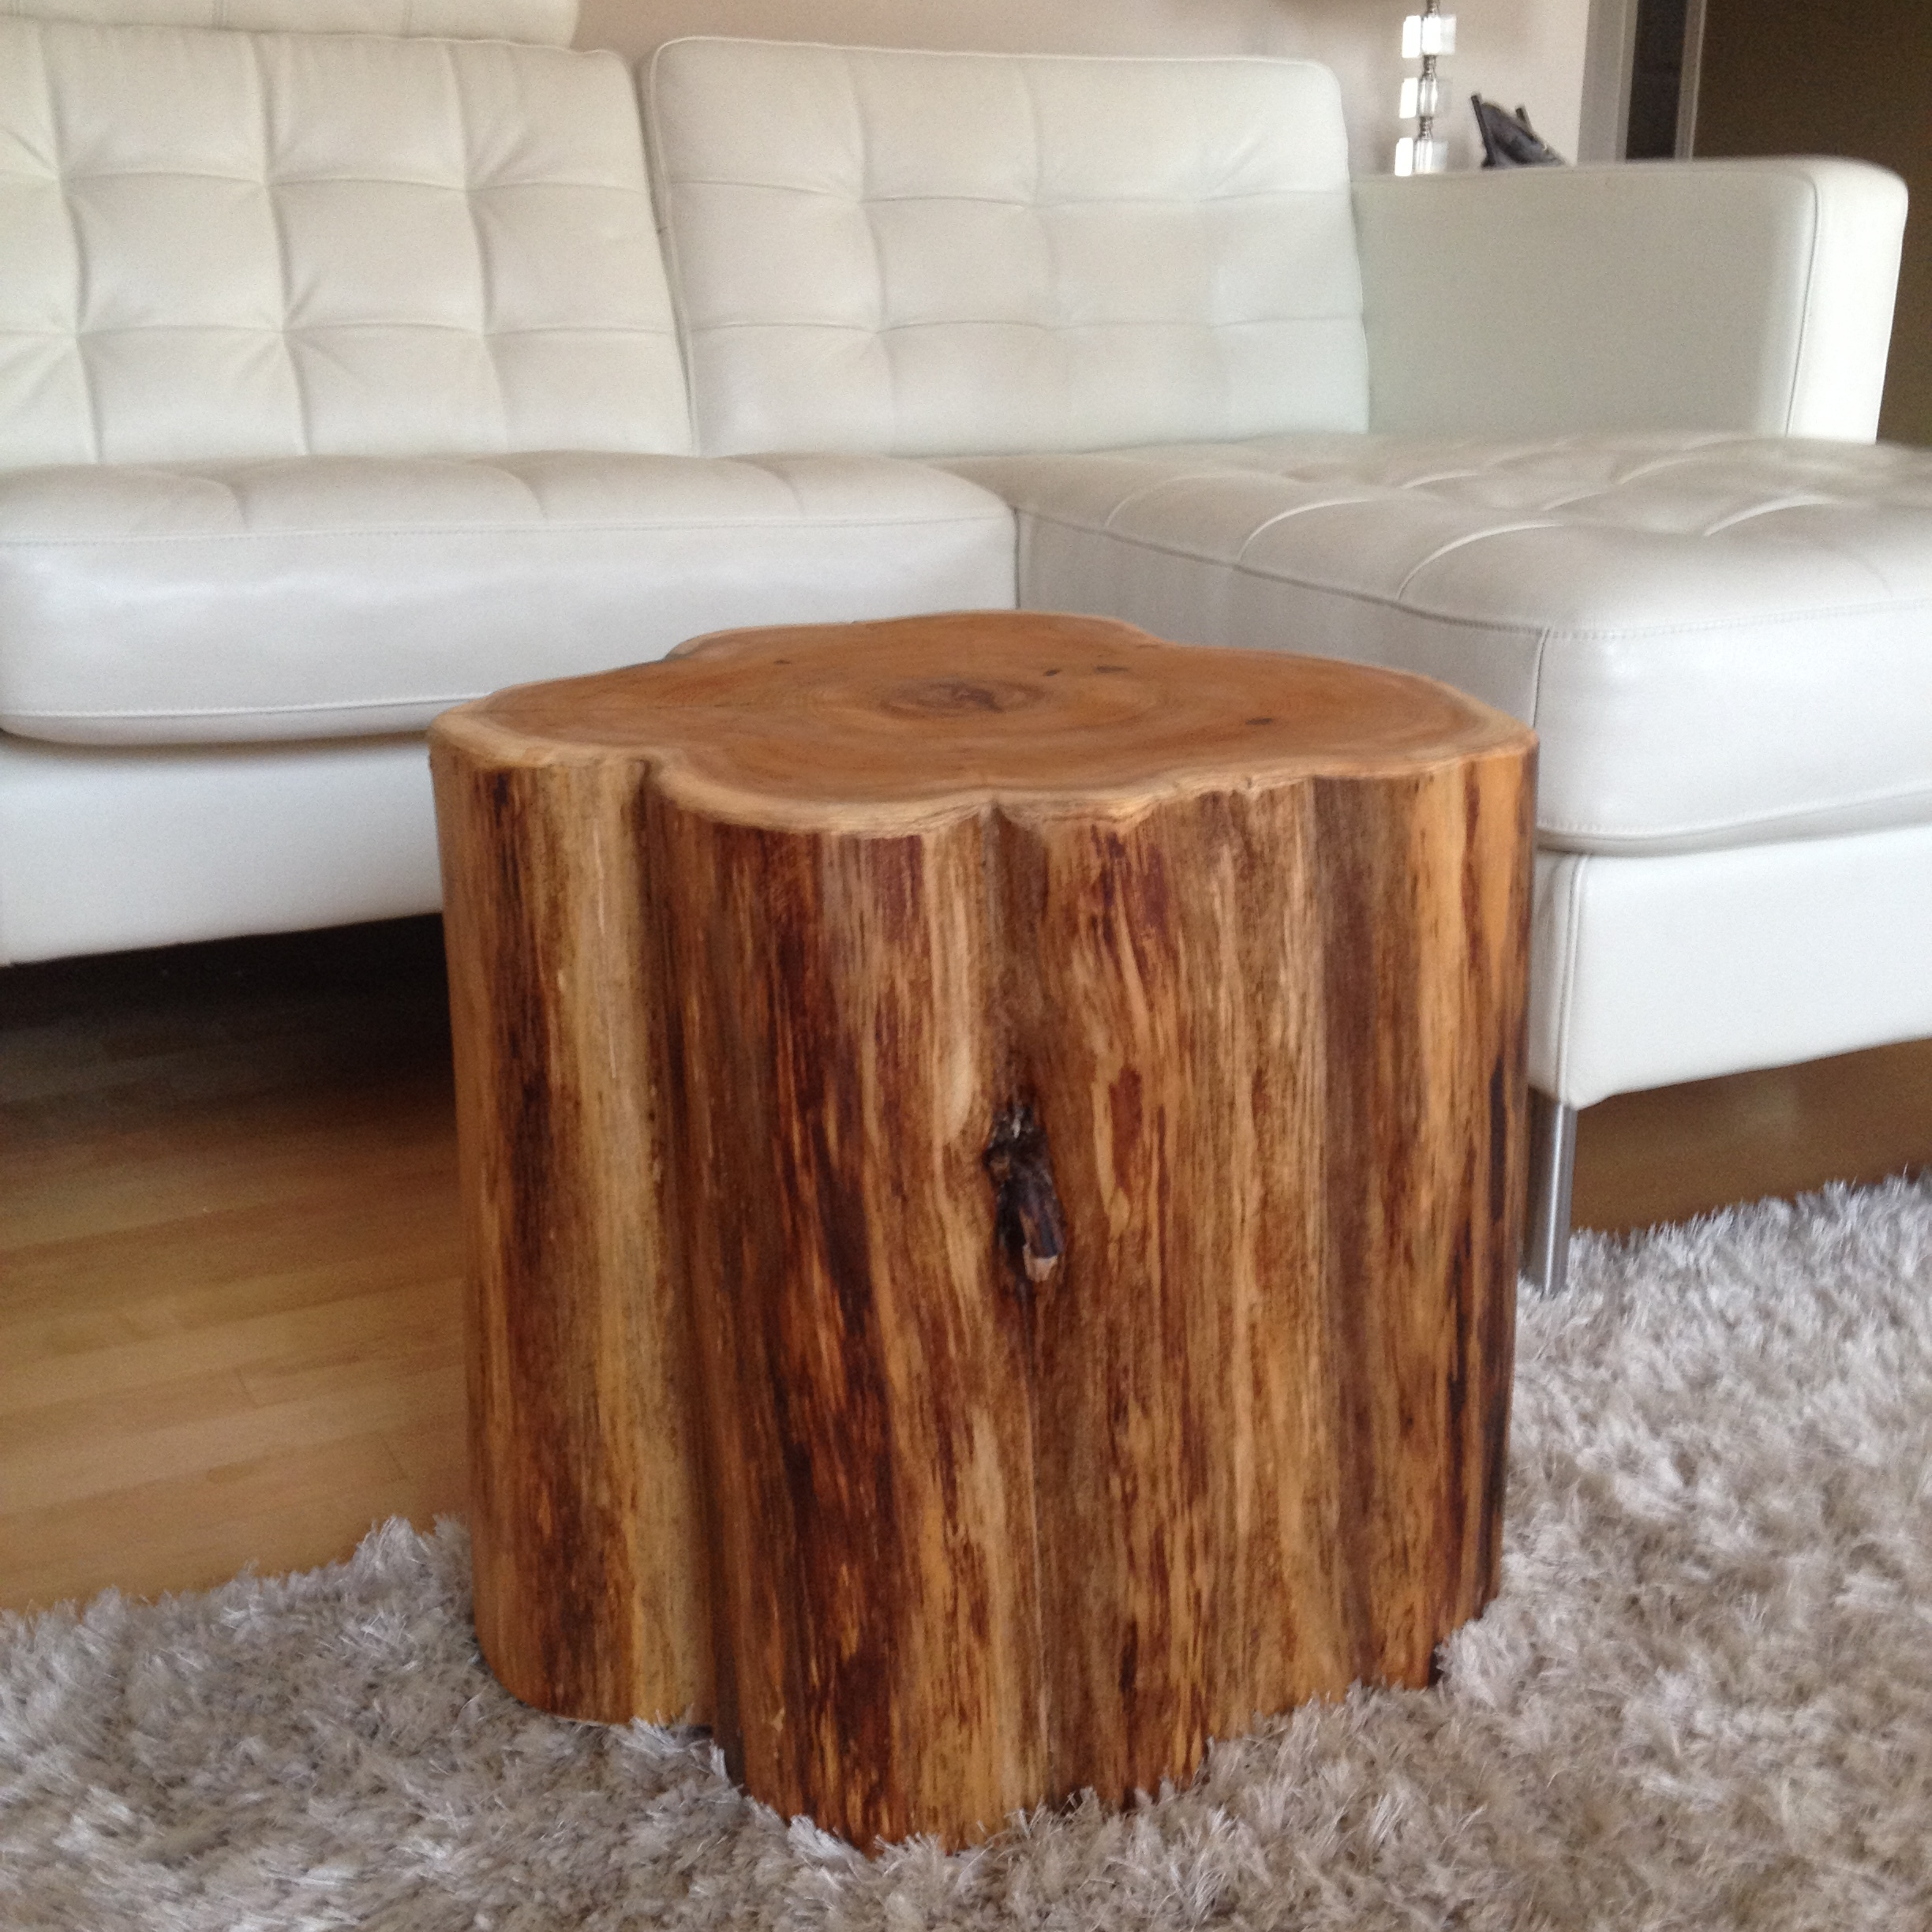 White Tree Stump Coffee Table: Stump Side Table, Log Side Tables, Rustic Coffee Table